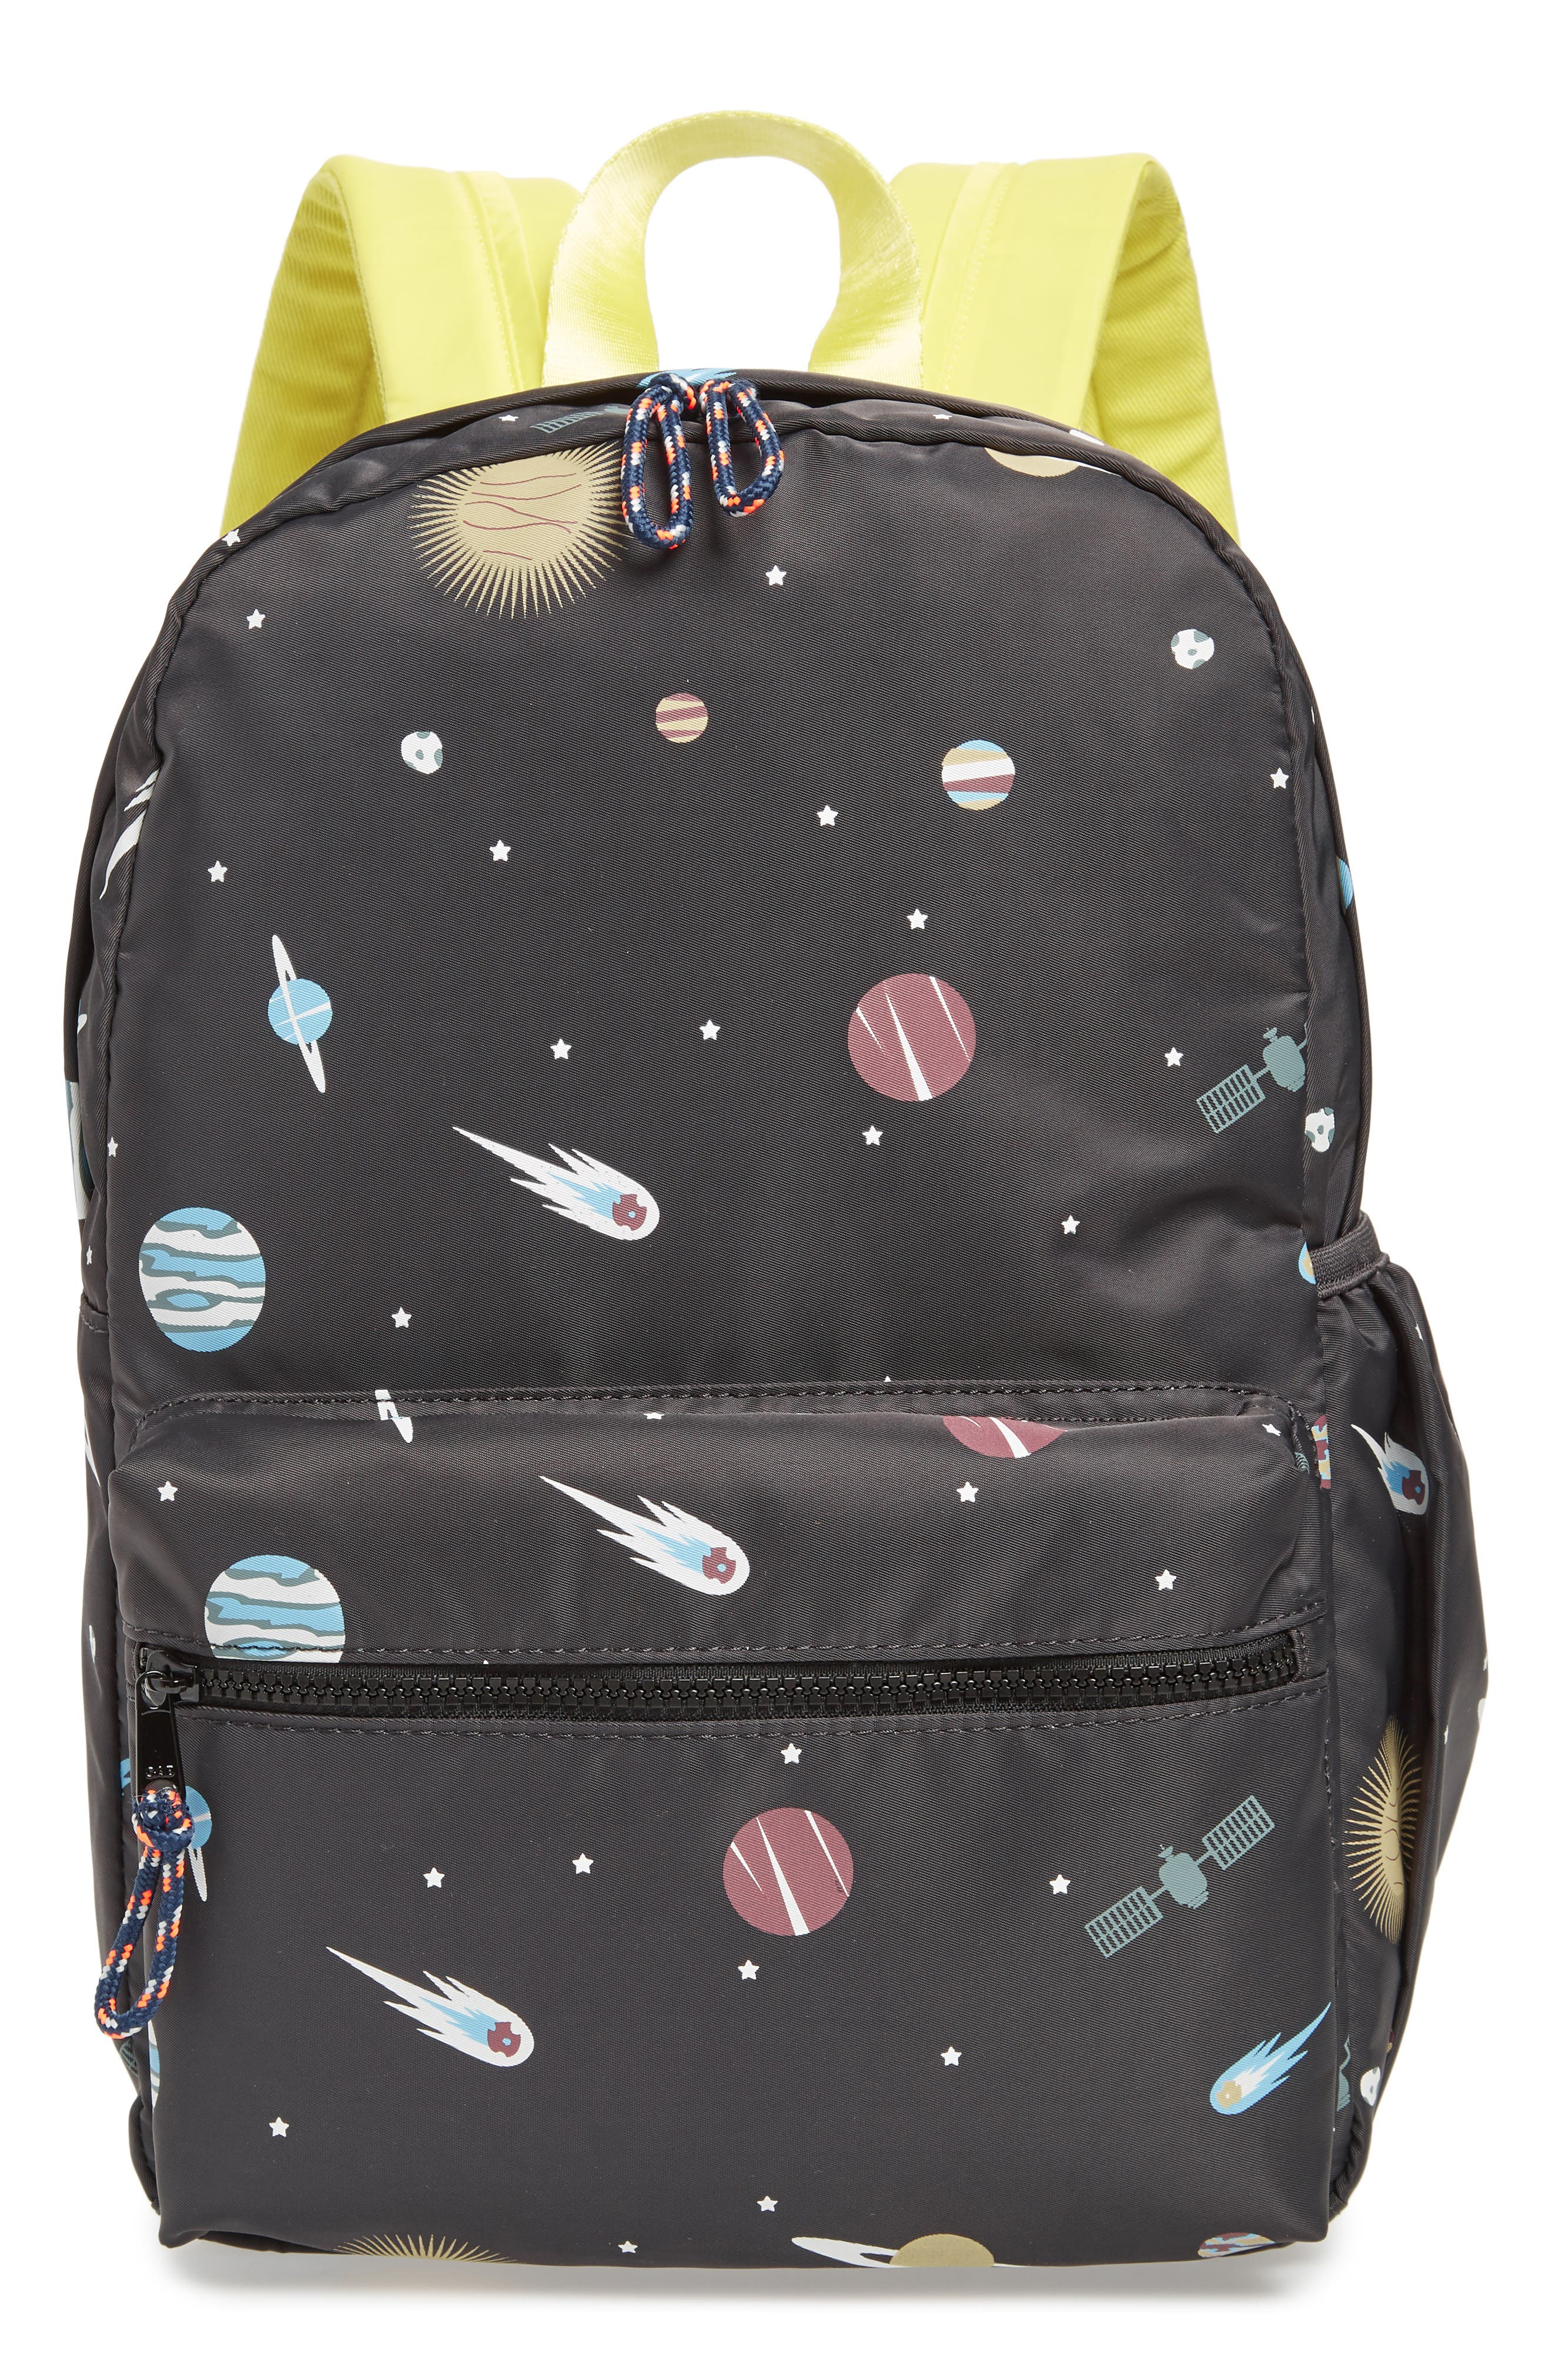 Glow in the Dark Space Print Backpack,                             Main thumbnail 1, color,